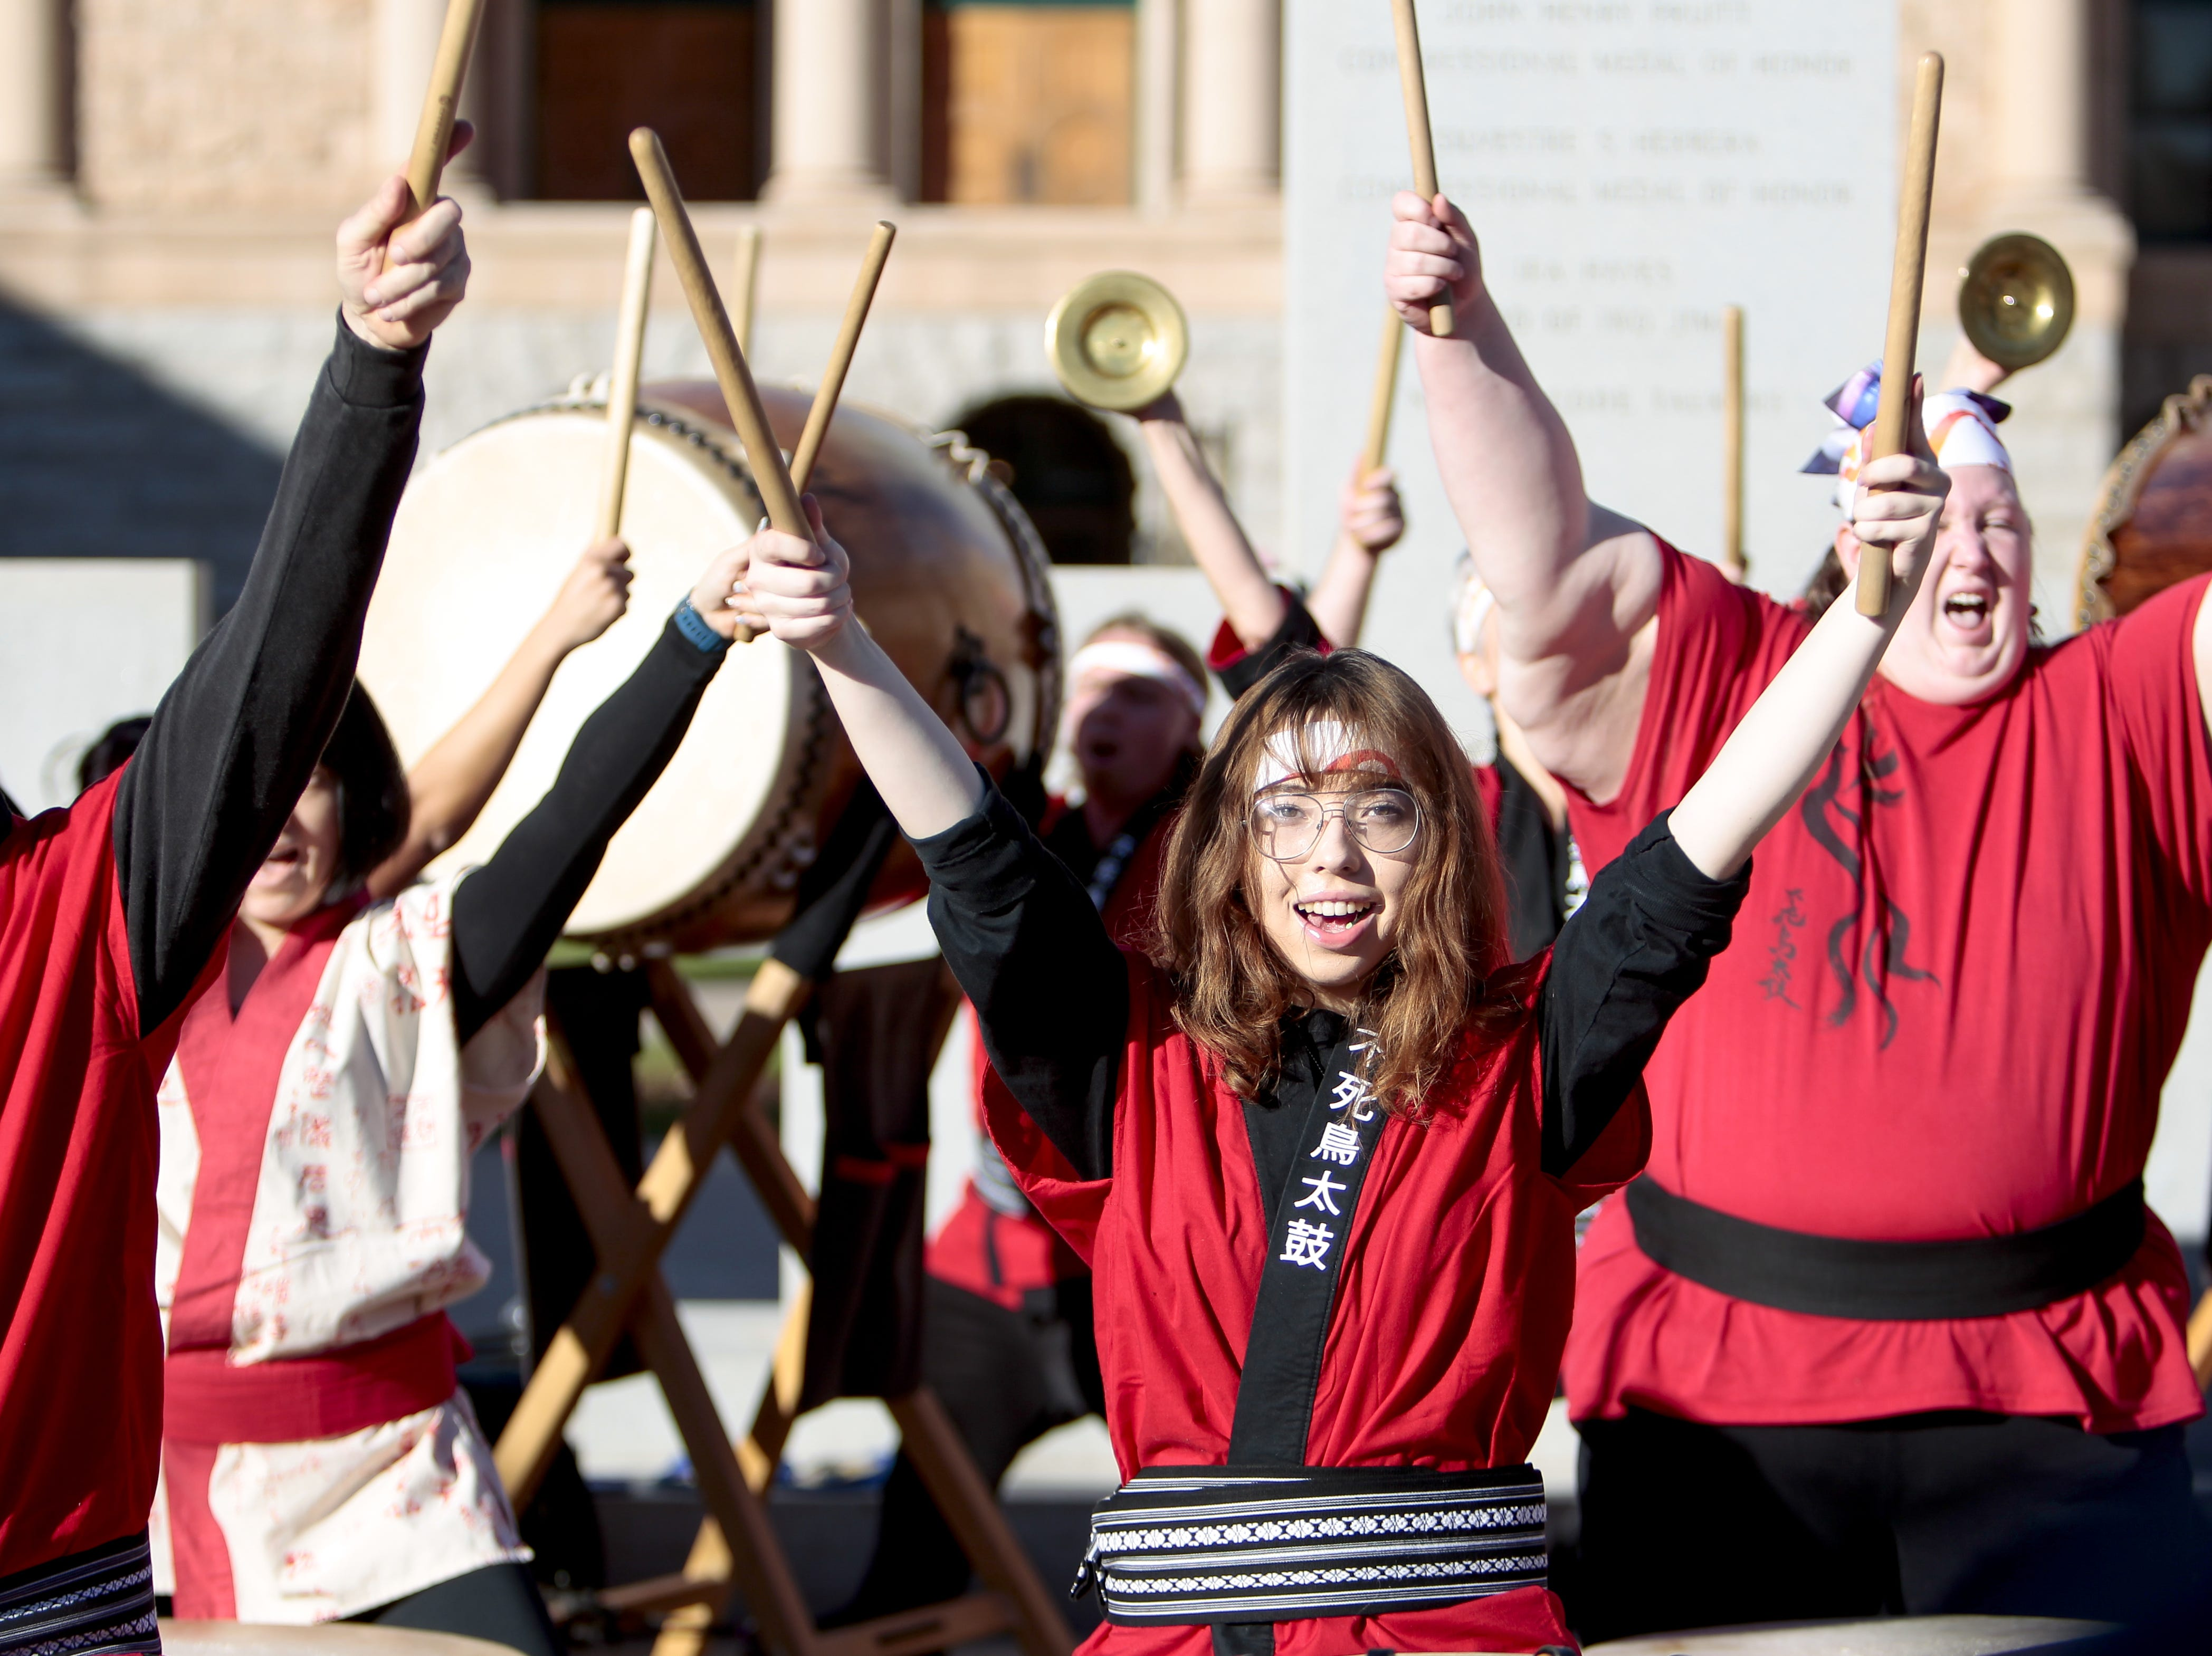 Sammie Barnes, 17, performs with the Fushiko Daiko Dojo at the Phoenix Women's March on Jan. 19, 2019, at the Arizona Capitol.